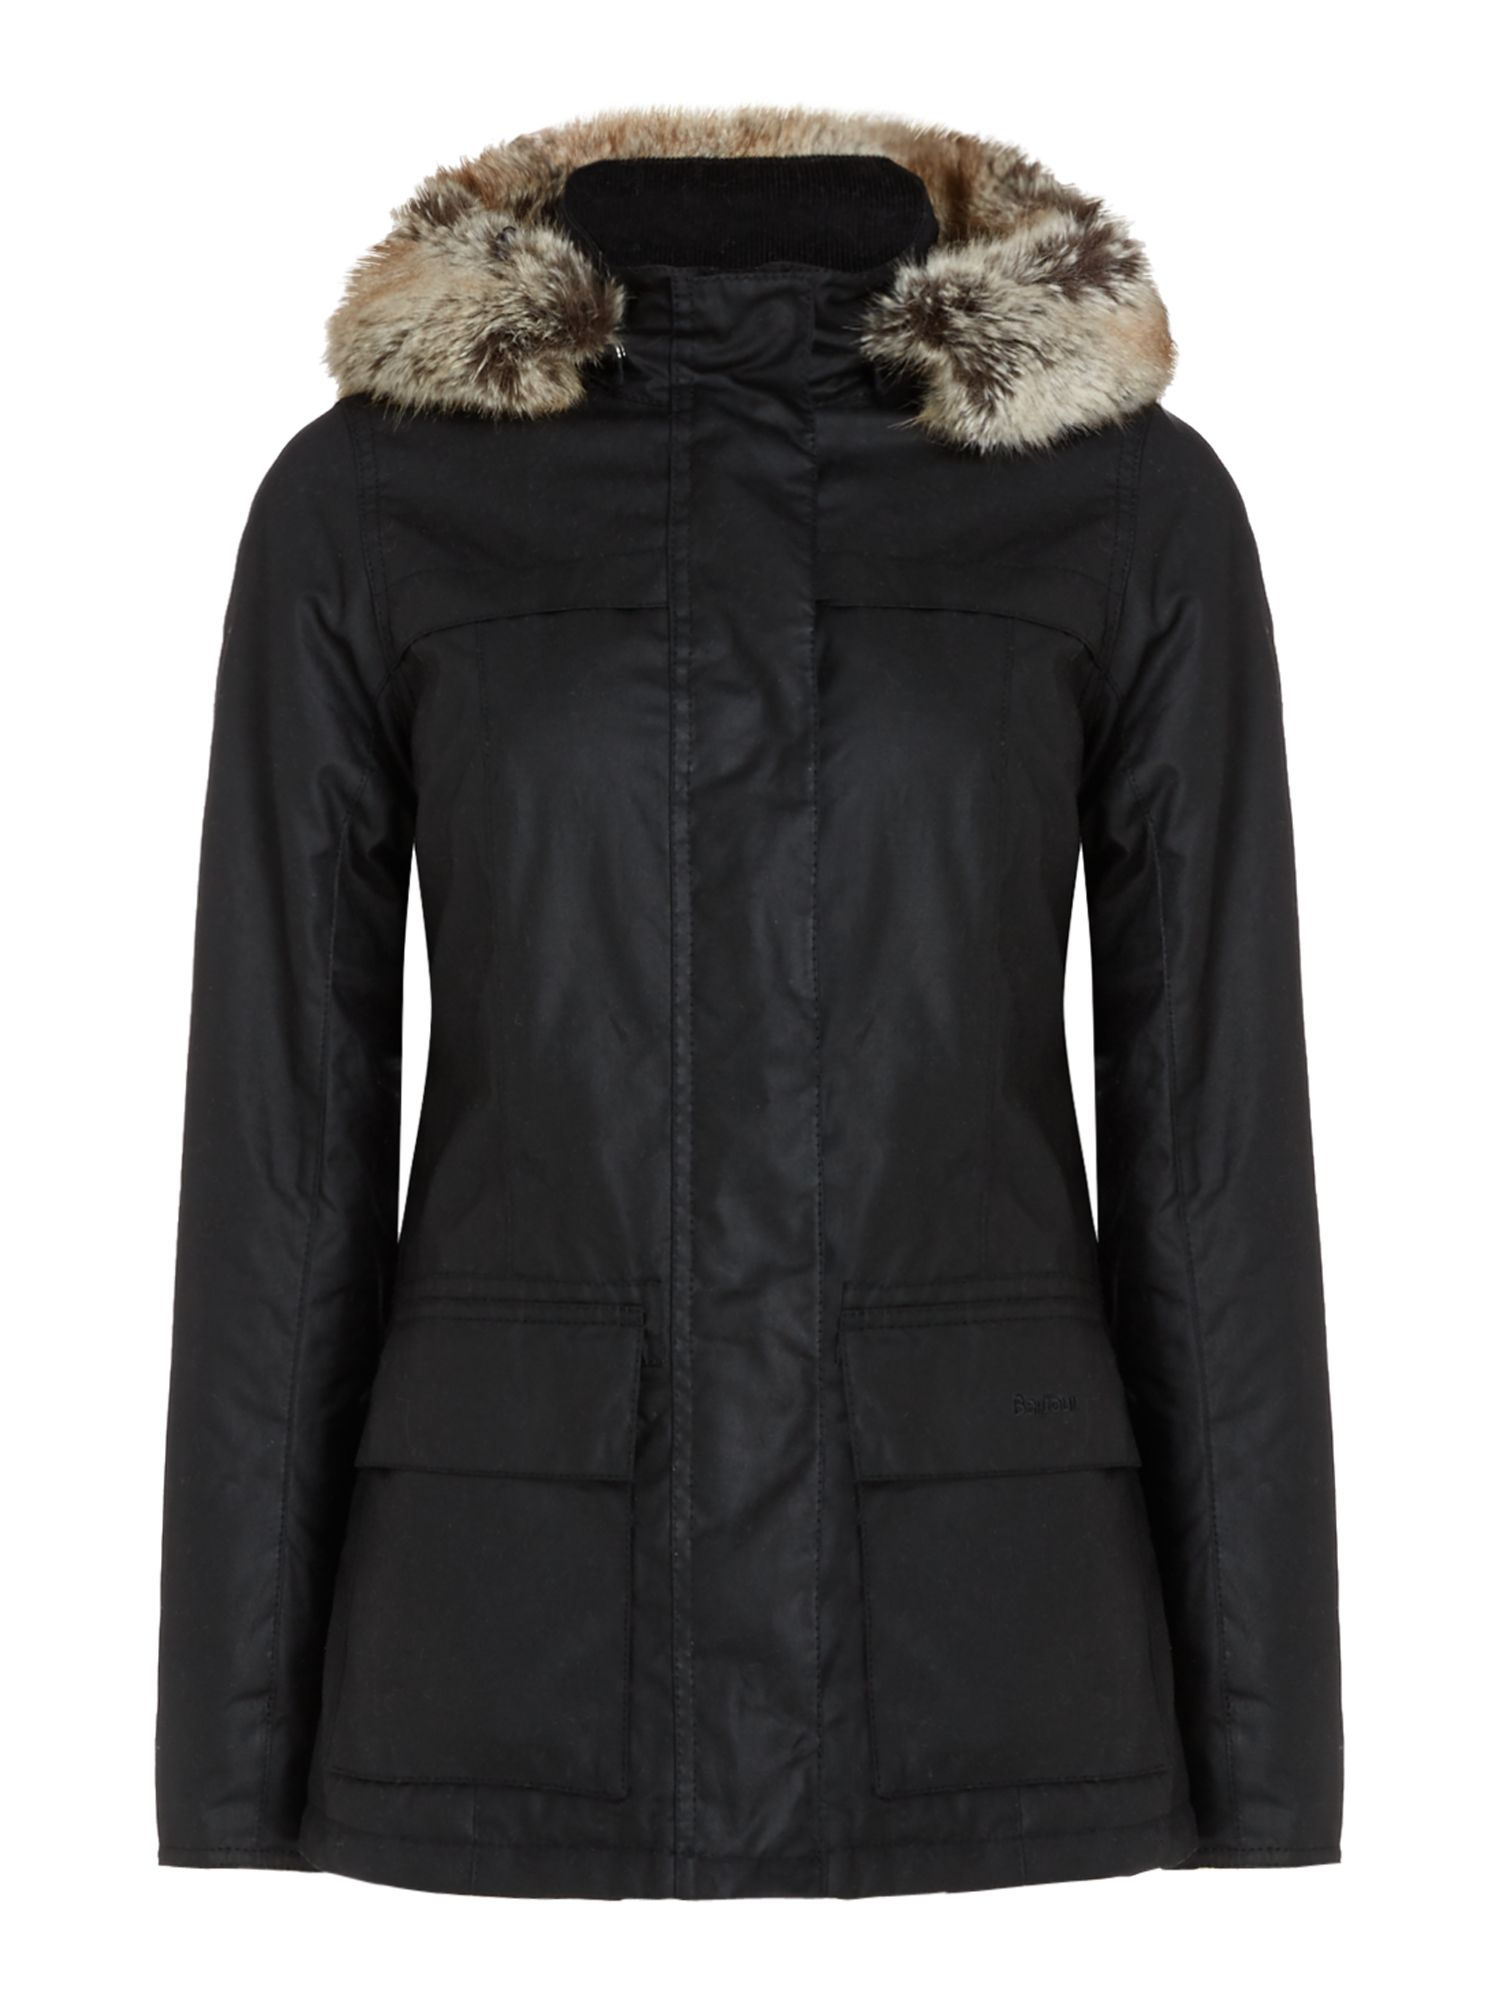 Barbour Ellen Wax Jacket, Black